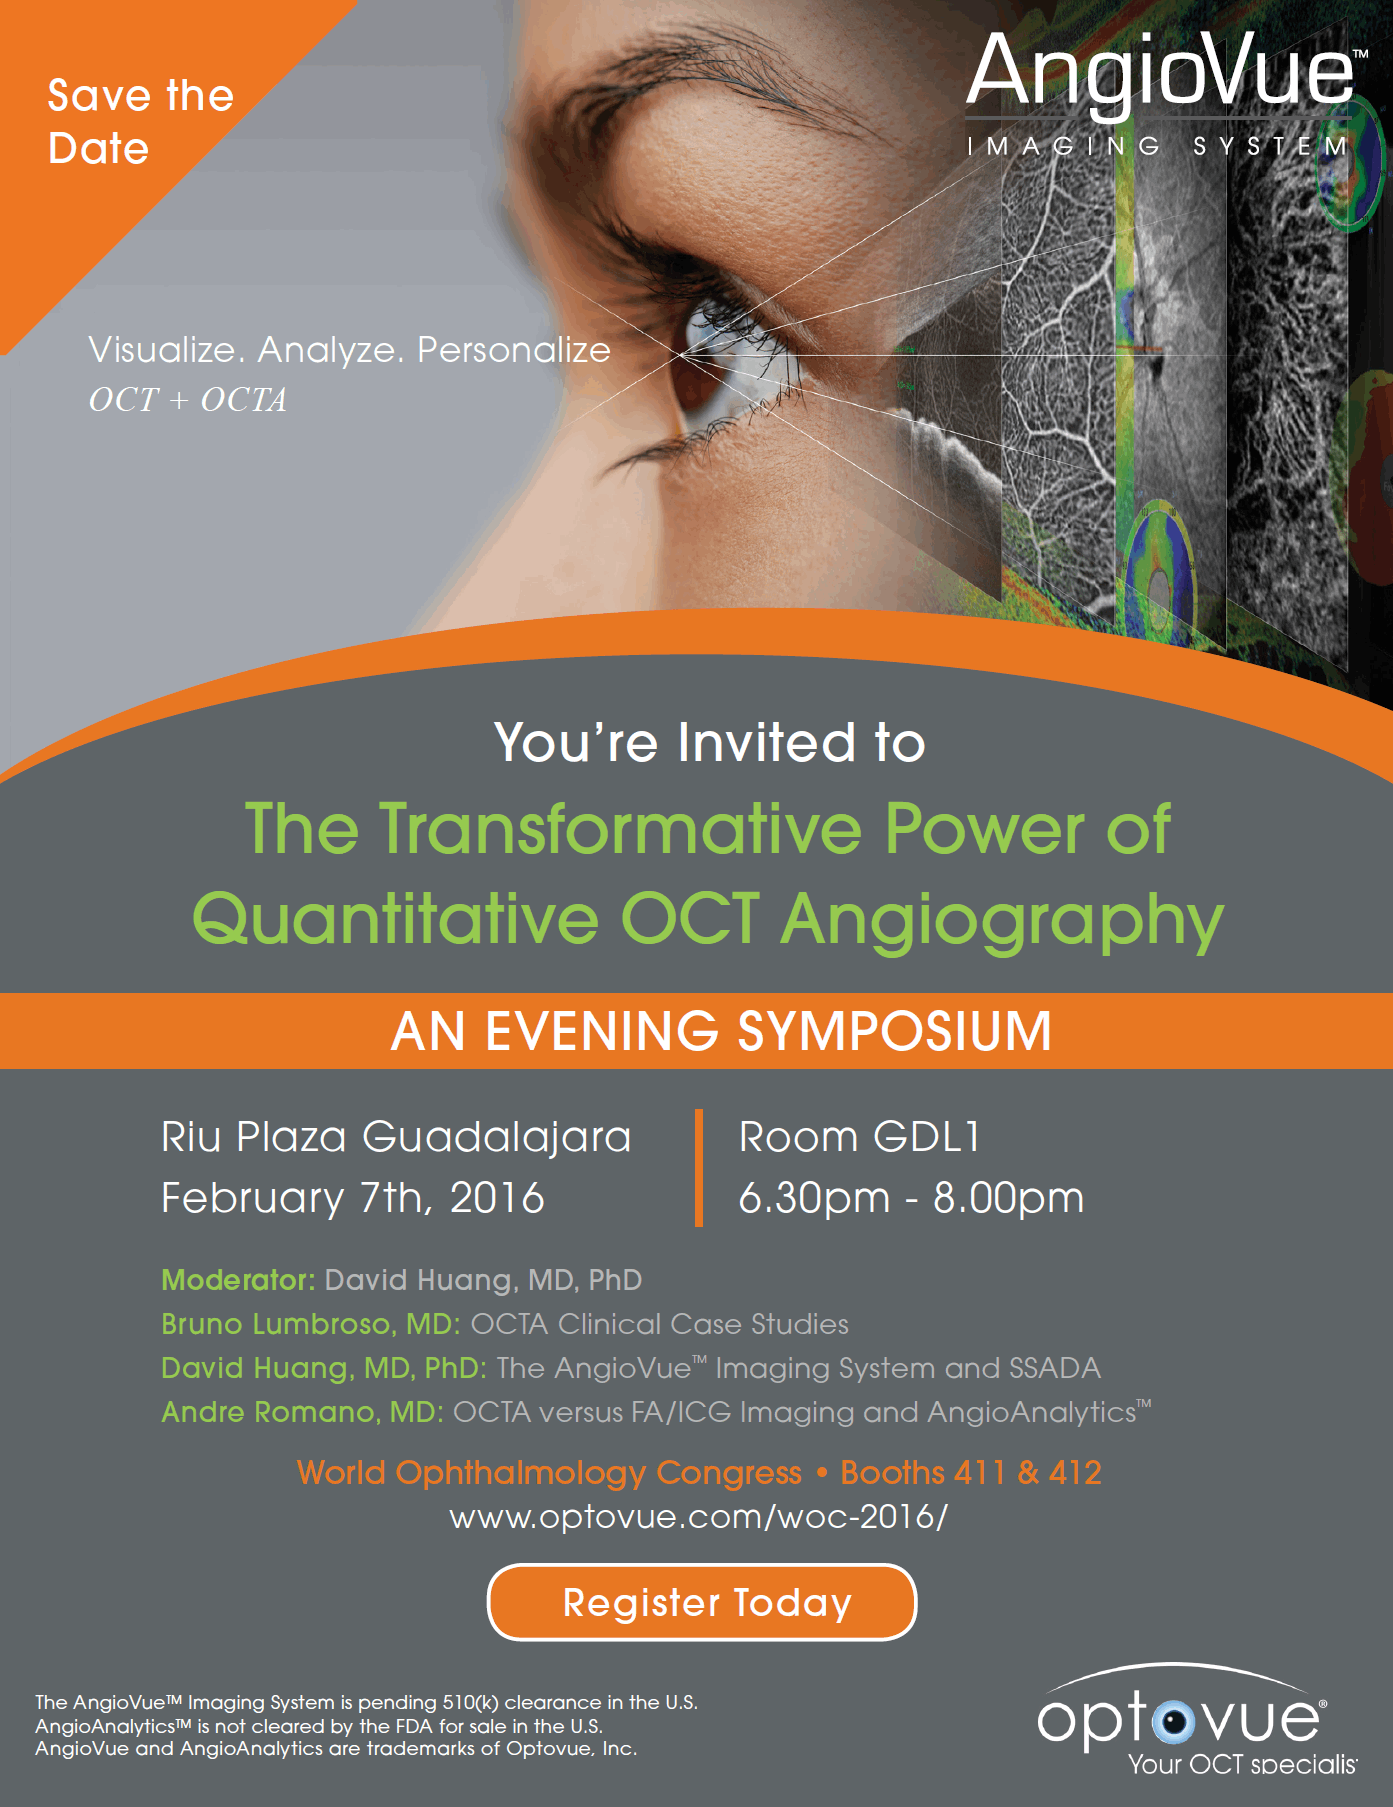 The Transformative Power of Quantitative OCT Angiography